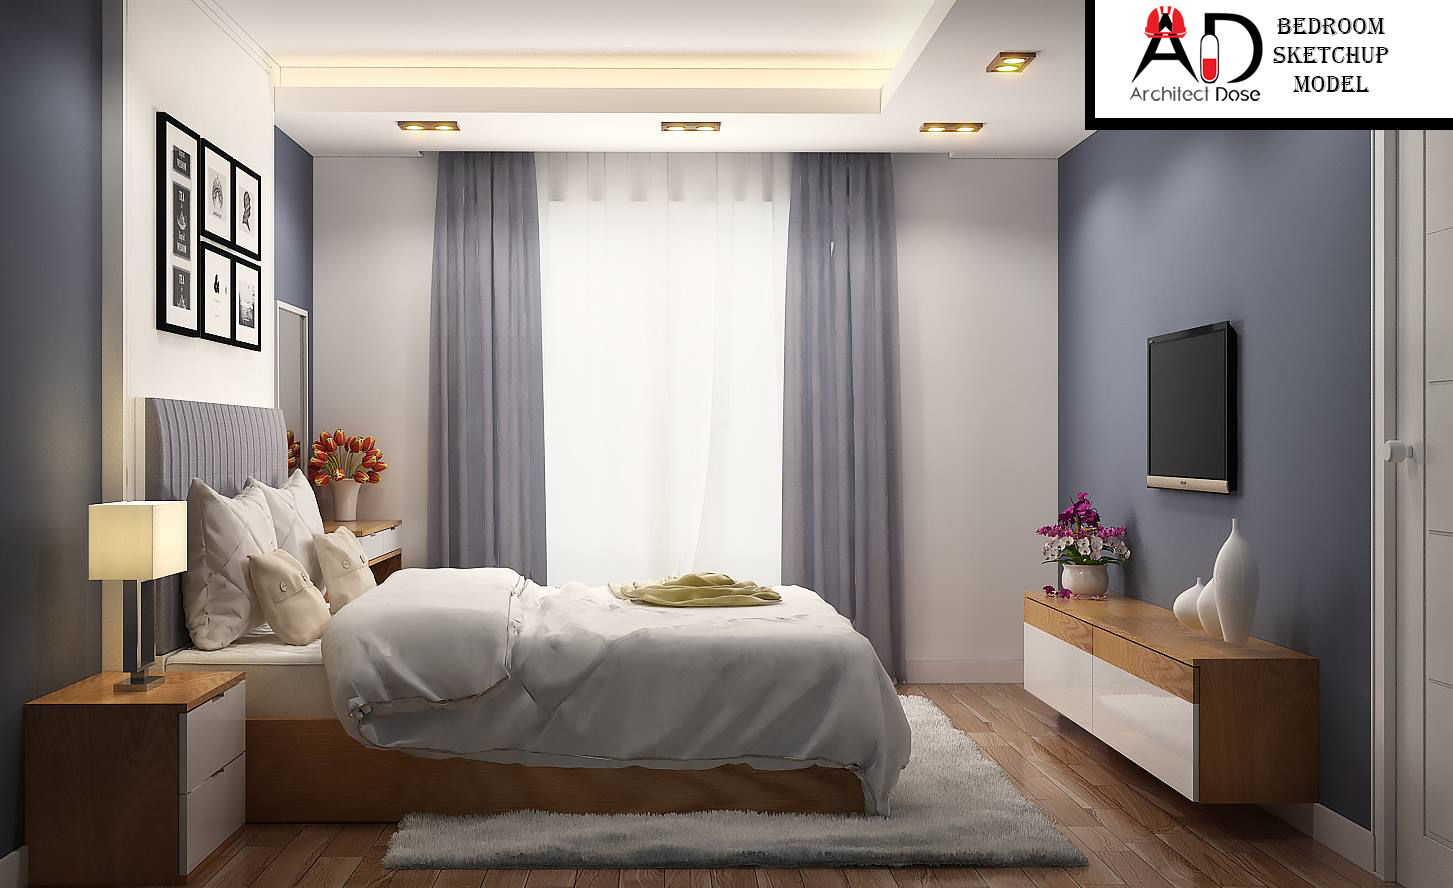 Architect Dose | Architecture, Sketchup, Tutorials, Models on Model Bedroom Design  id=90560